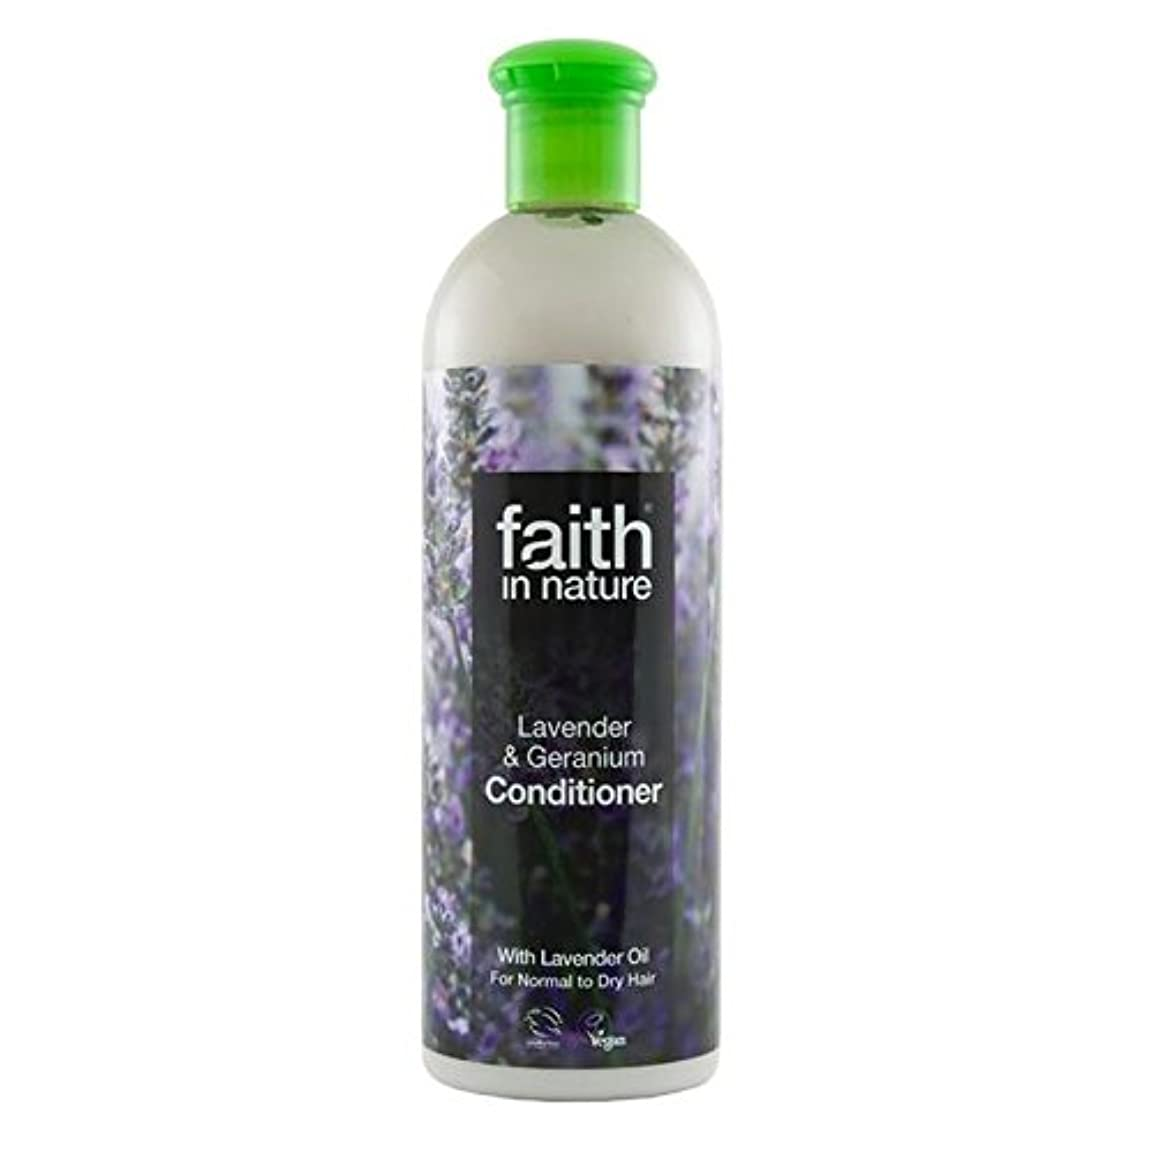 Faith in Nature Lavender & Geranium Conditioner 400ml (Pack of 2) - (Faith In Nature) 自然ラベンダー&ゼラニウムコンディショナー400...